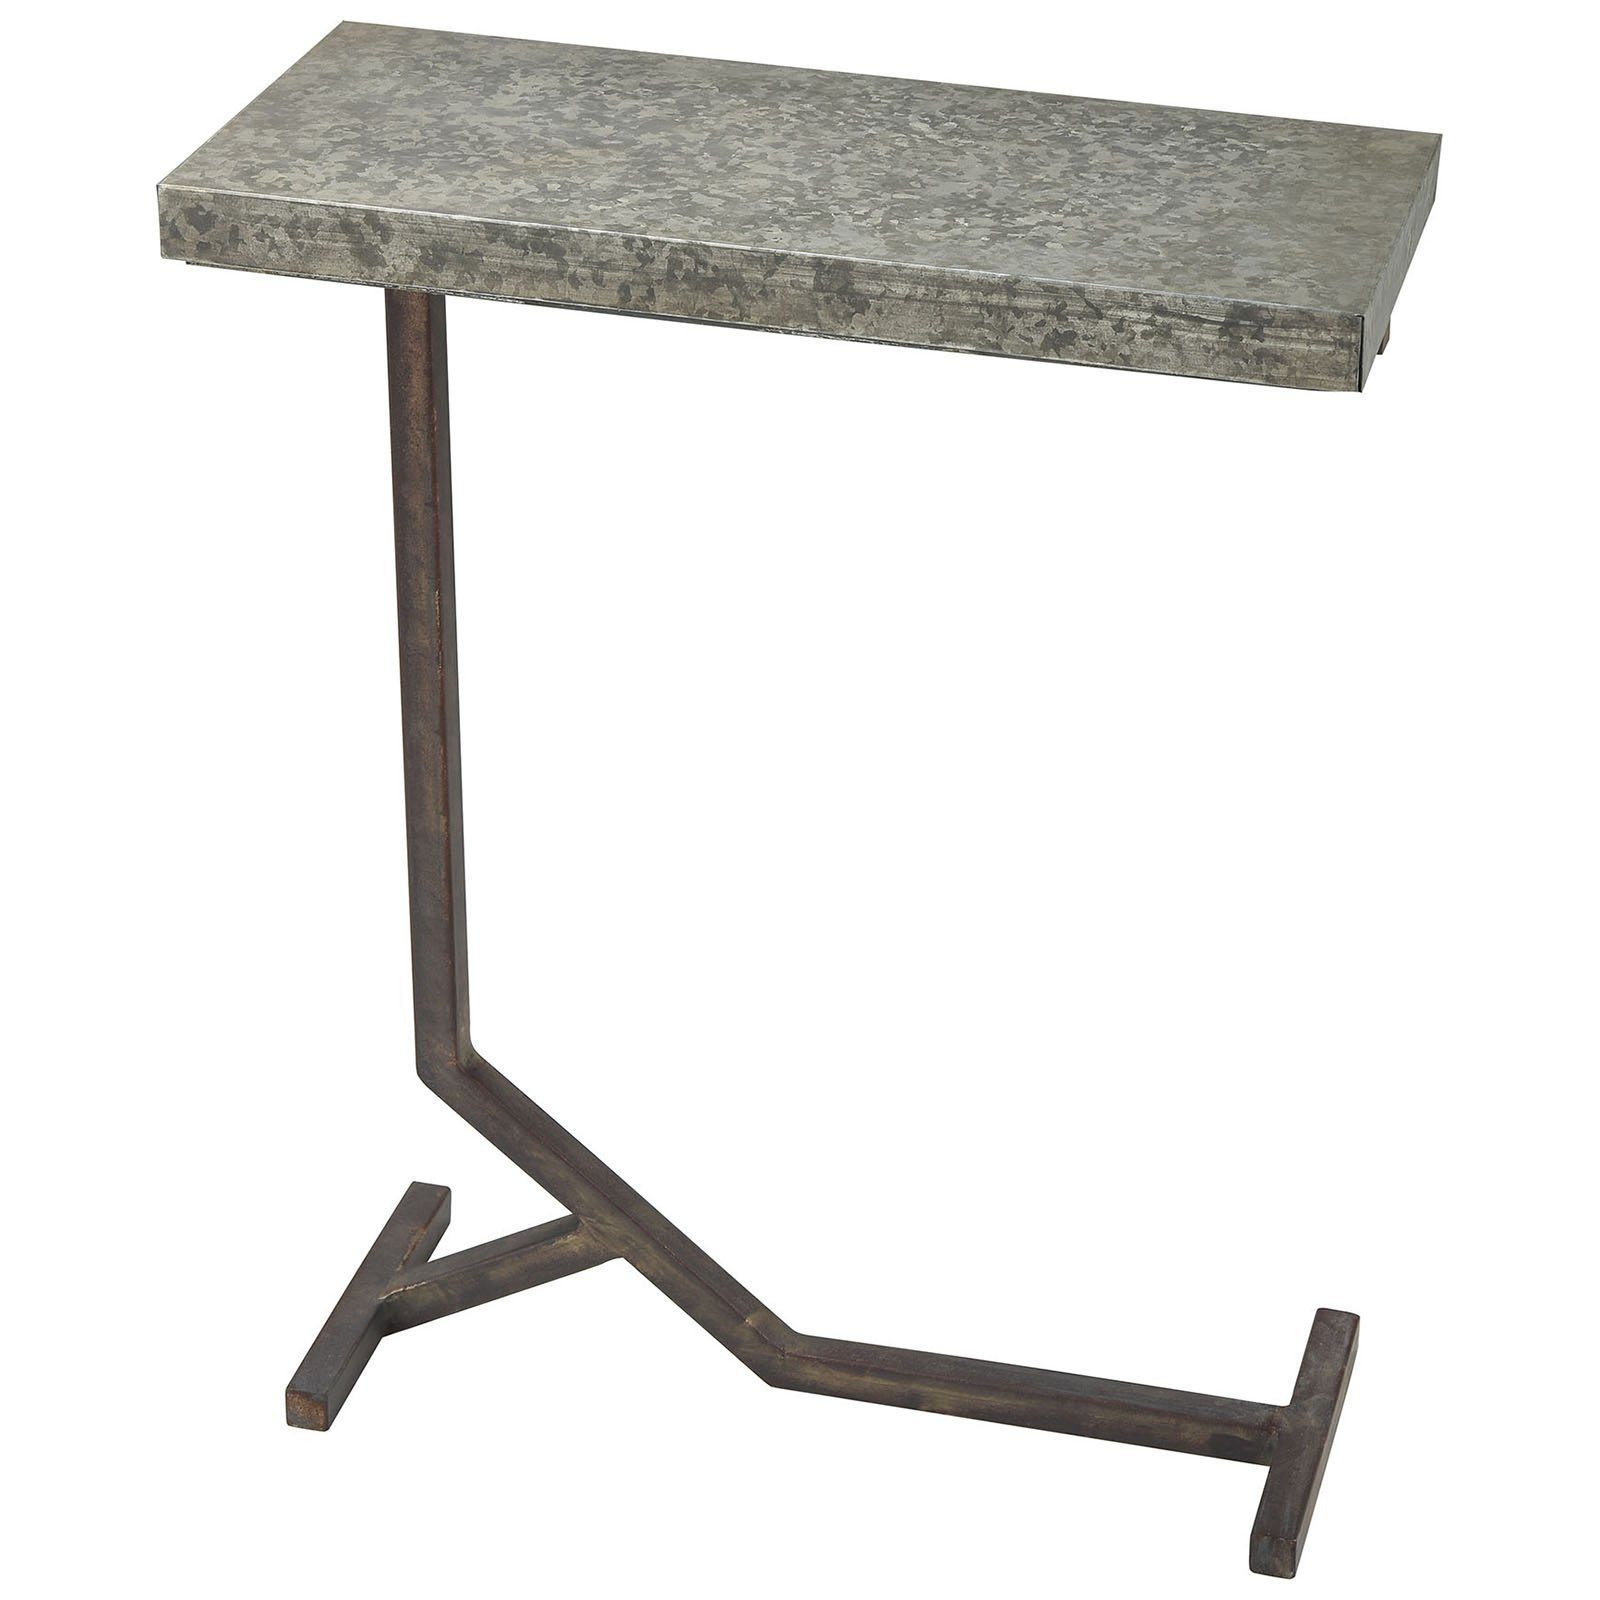 mettle transitional accent tables bronze fratantoni lifestyles metal table oak wine cabinet modern marble top coffee side for living room pink gray and white drum seat height